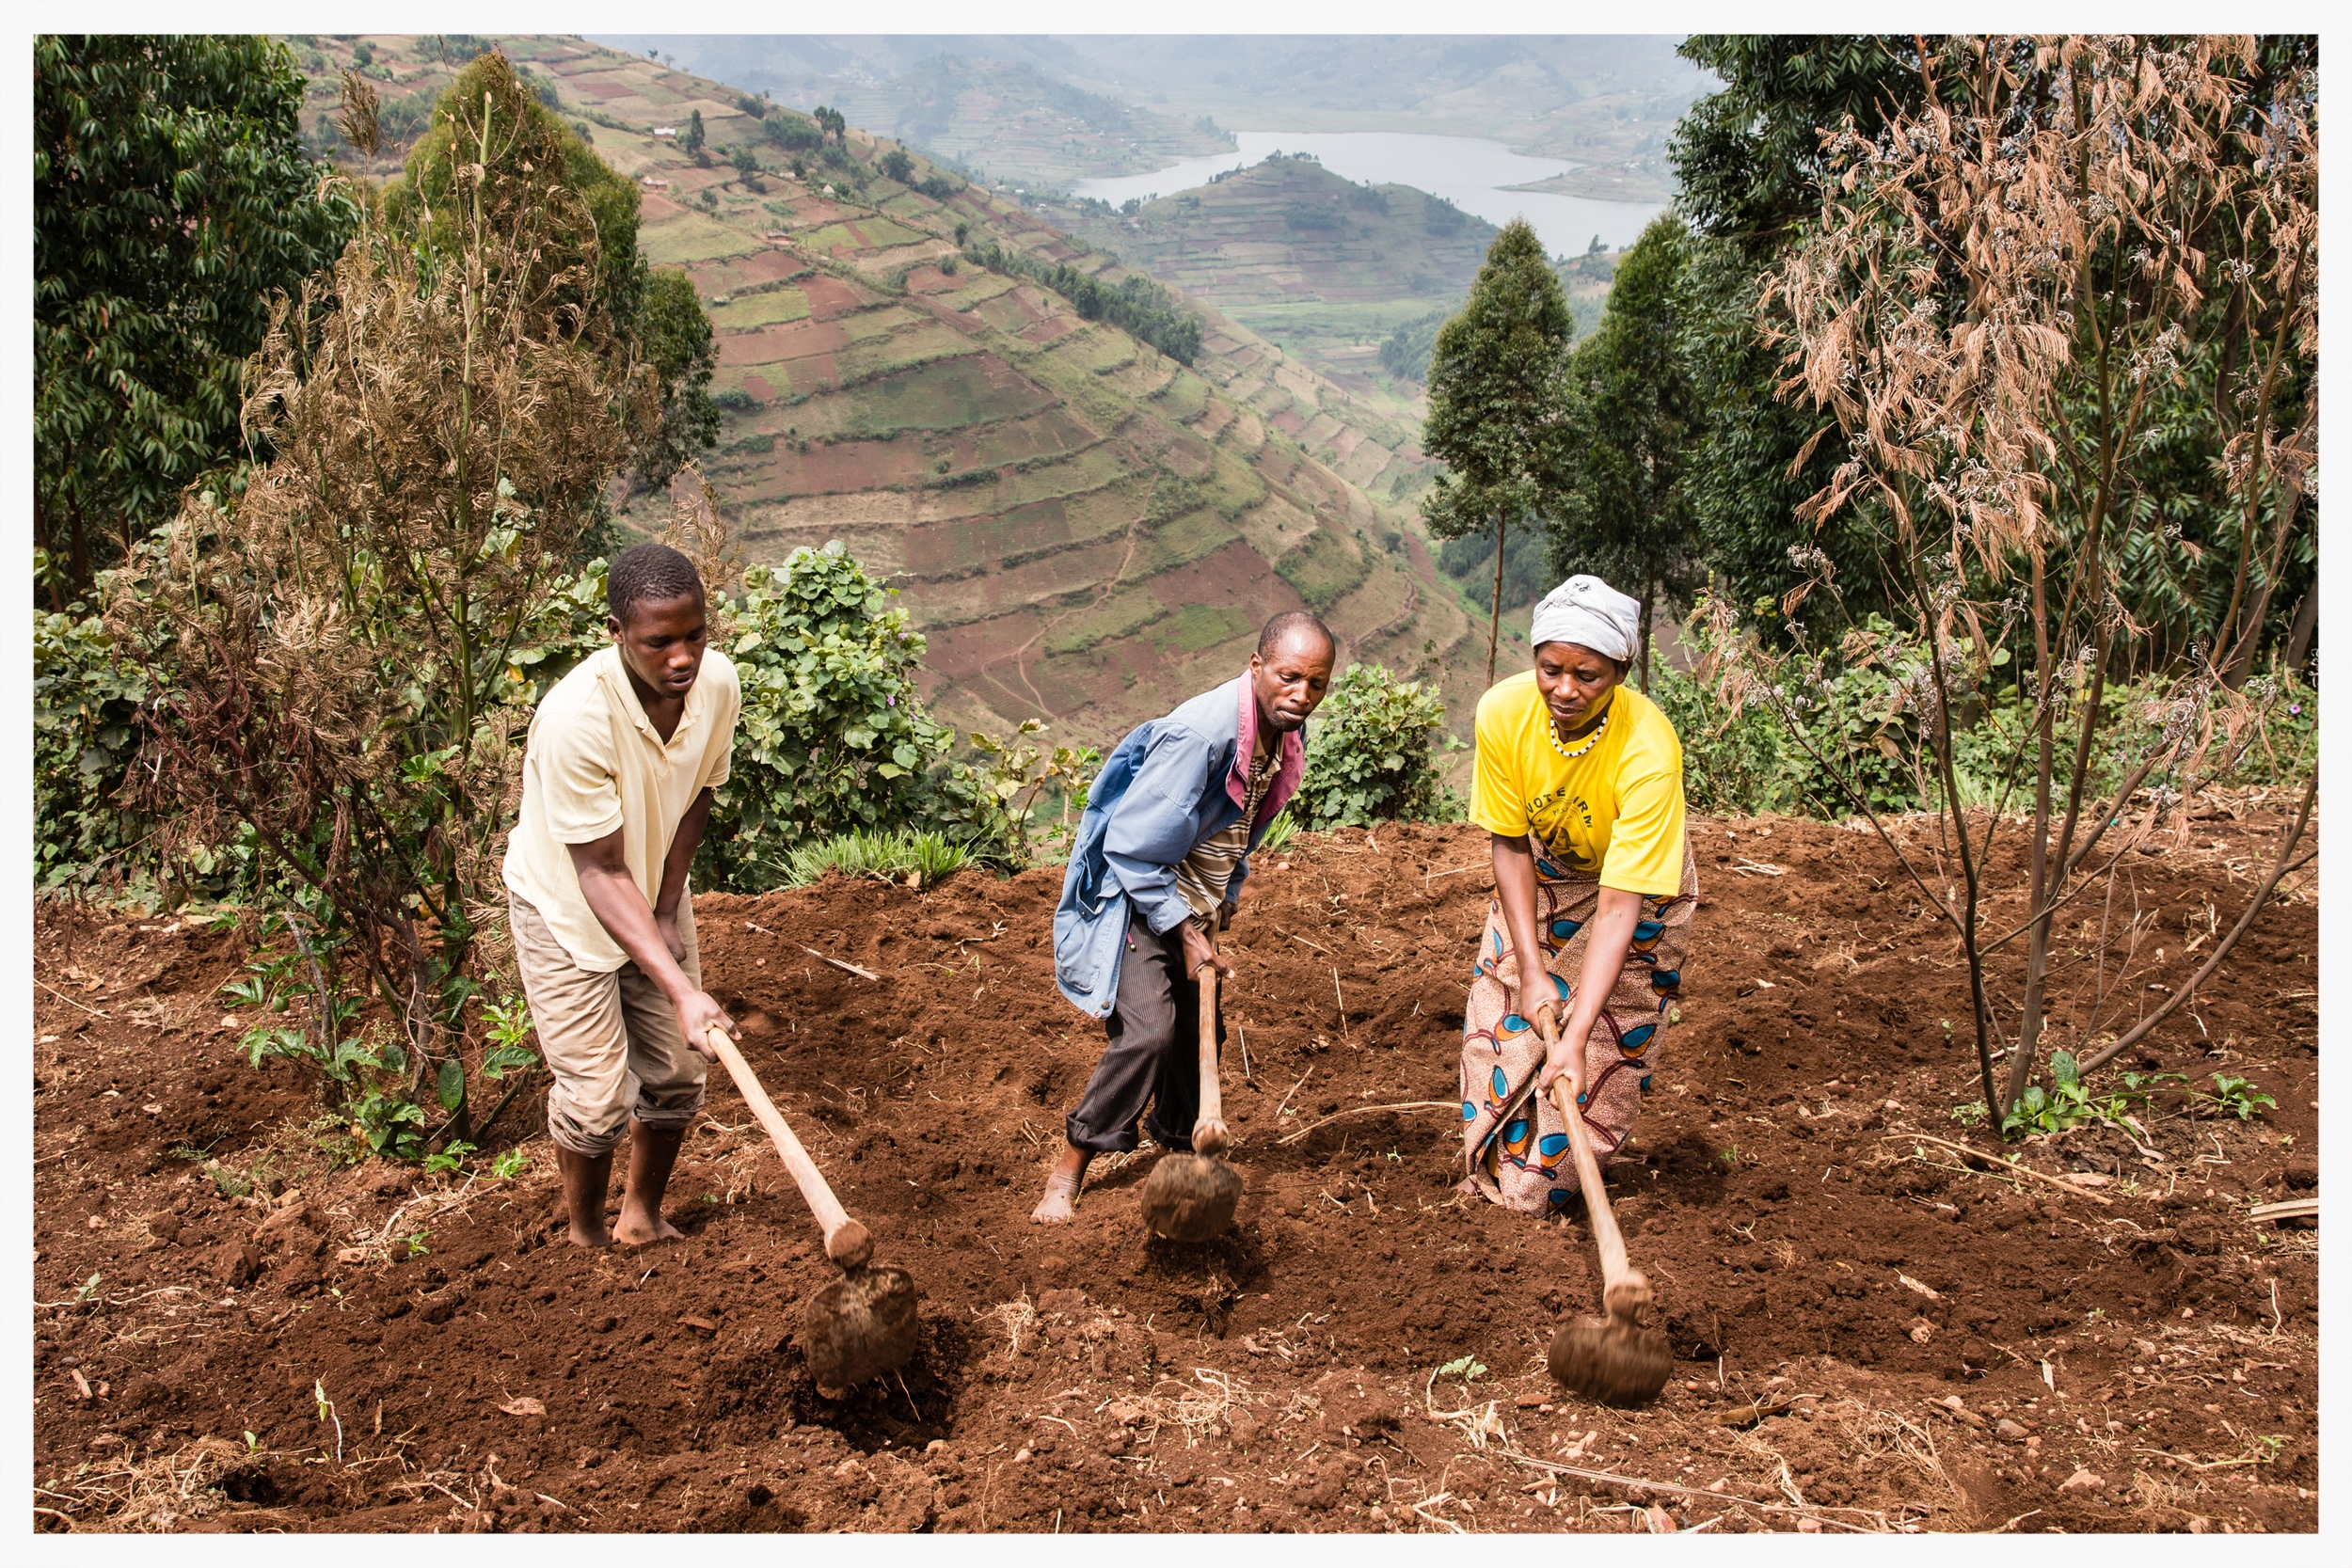 Milton and his family working in their potato field, Kabale district, south west Uganda. Photo © Marcus Perkins